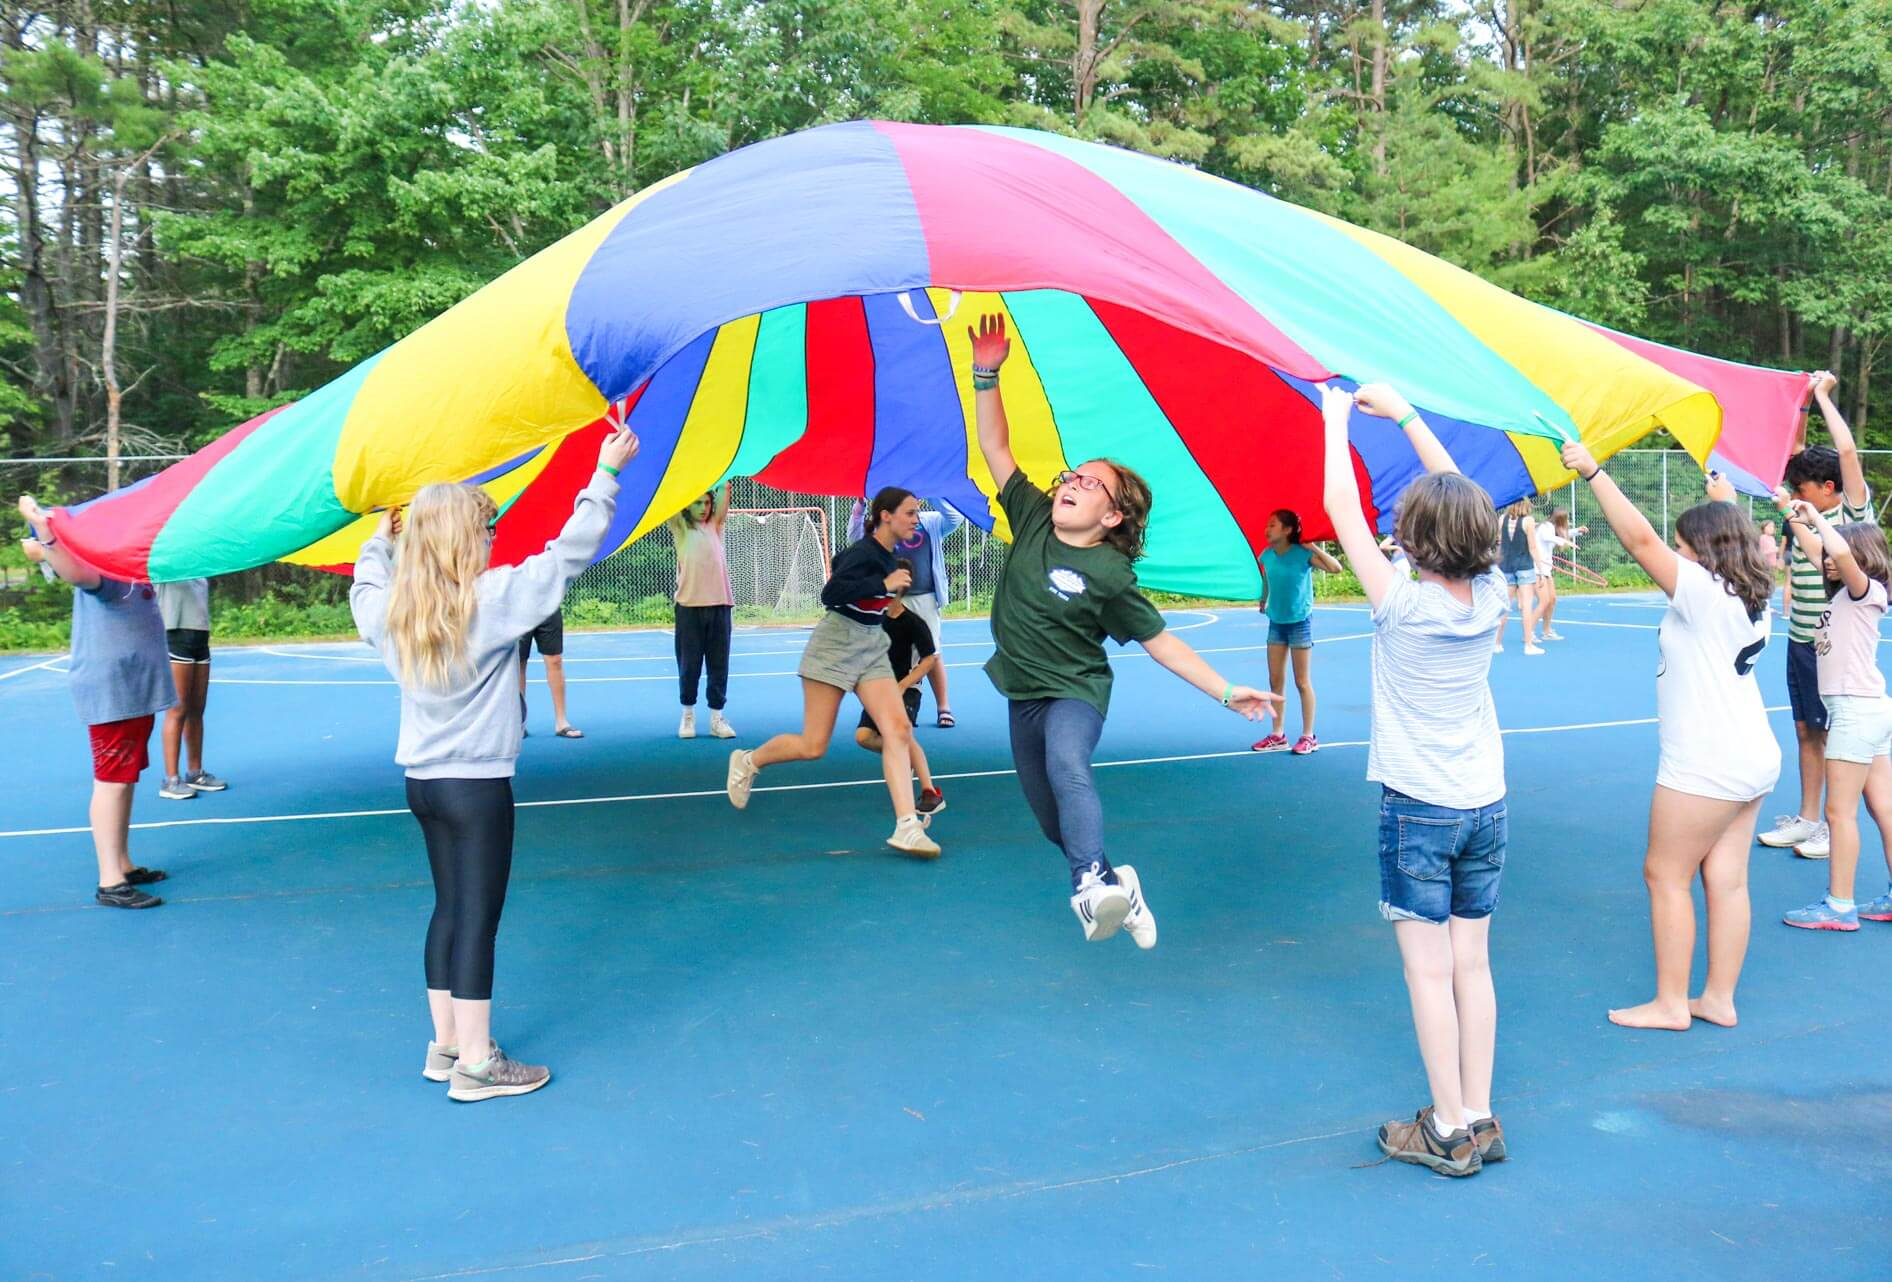 Young campers do activity with large colorful fabric